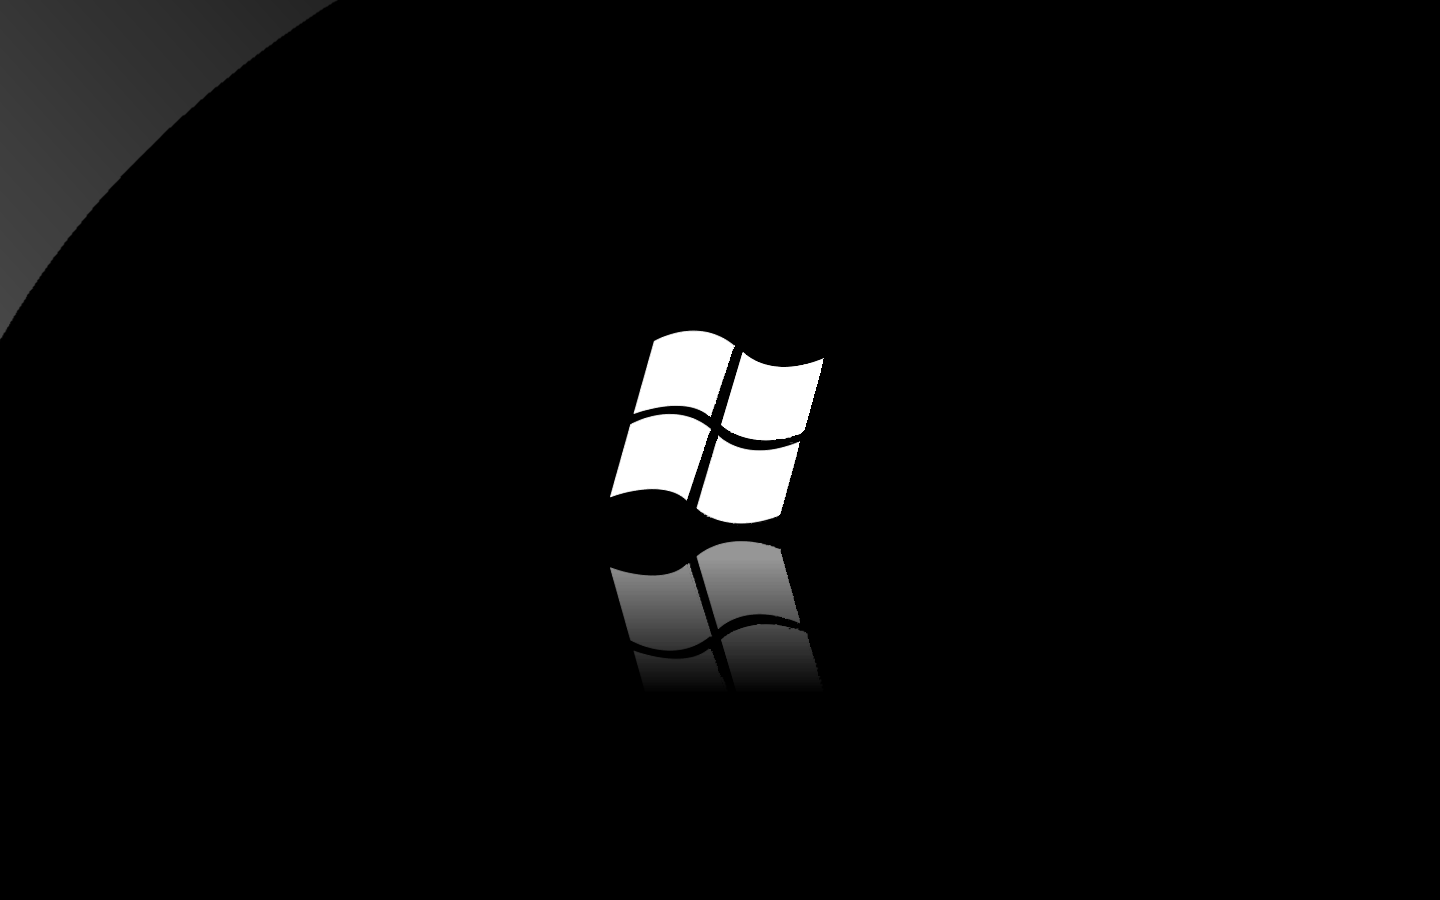 Microsoft Wallpaper   wwwhigh definition wallpapersinfo 1440x900